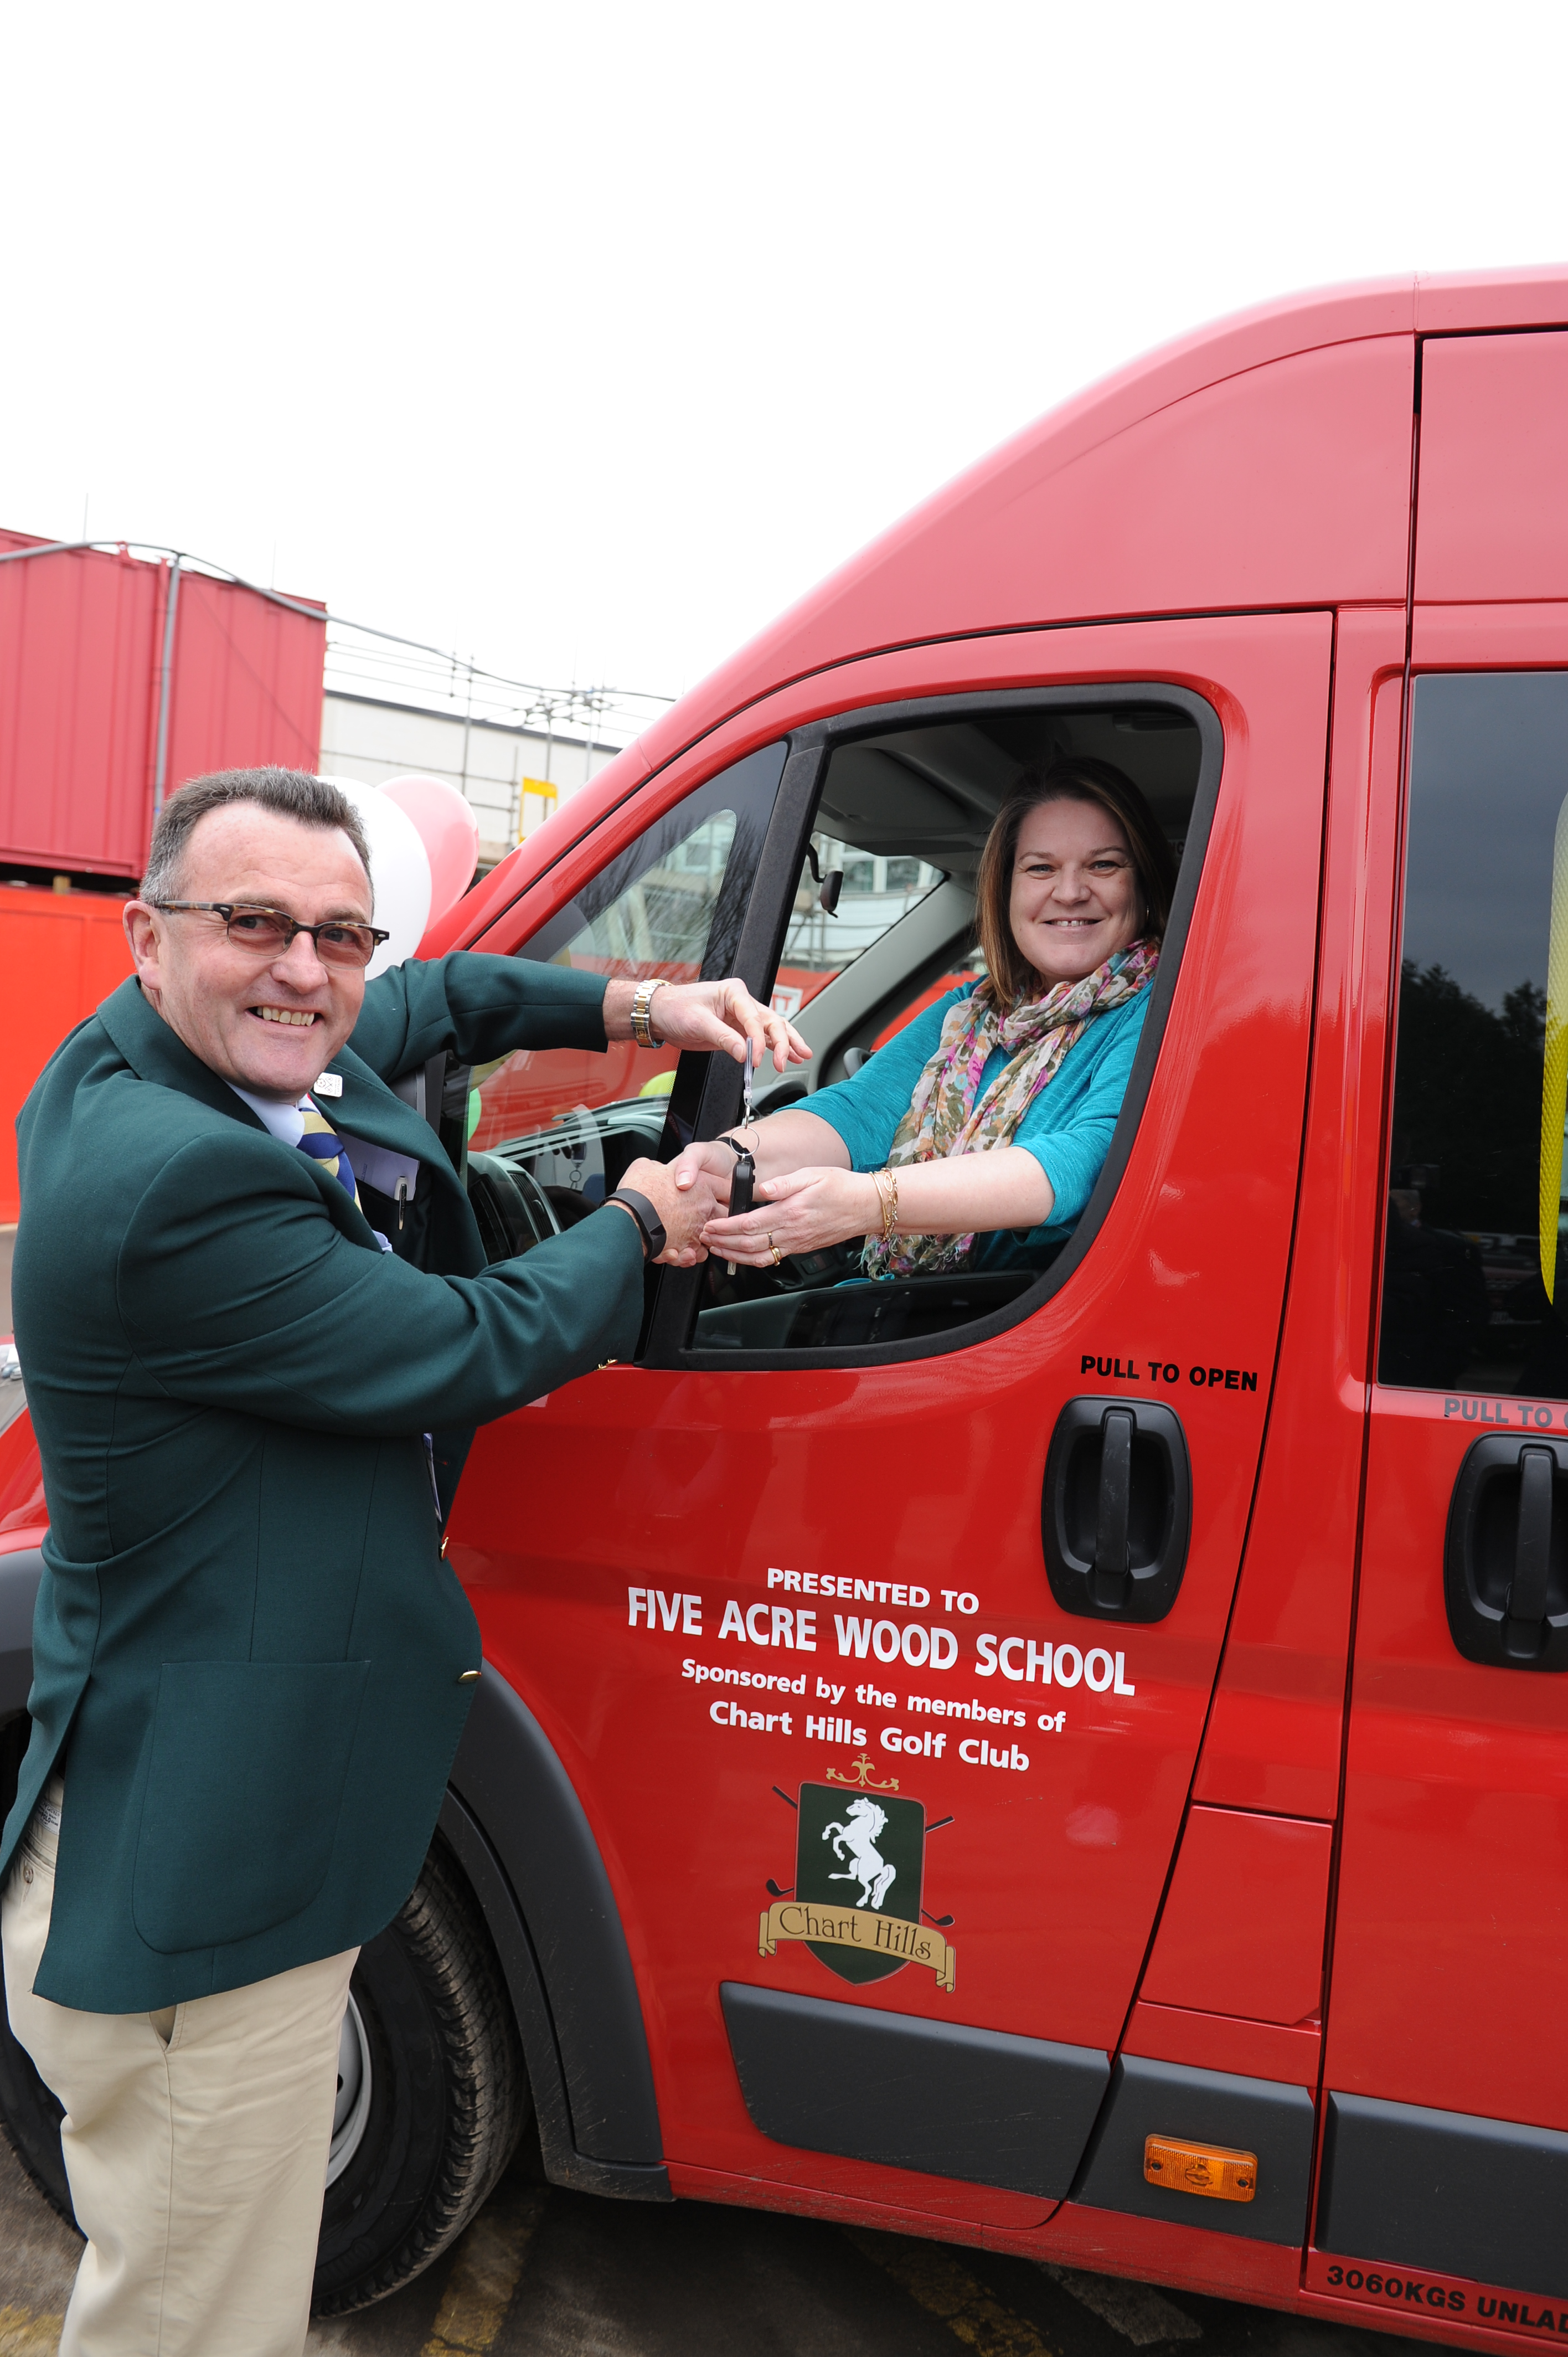 Five Acre Wood School: Two New Minibuses For Five Acre Wood School